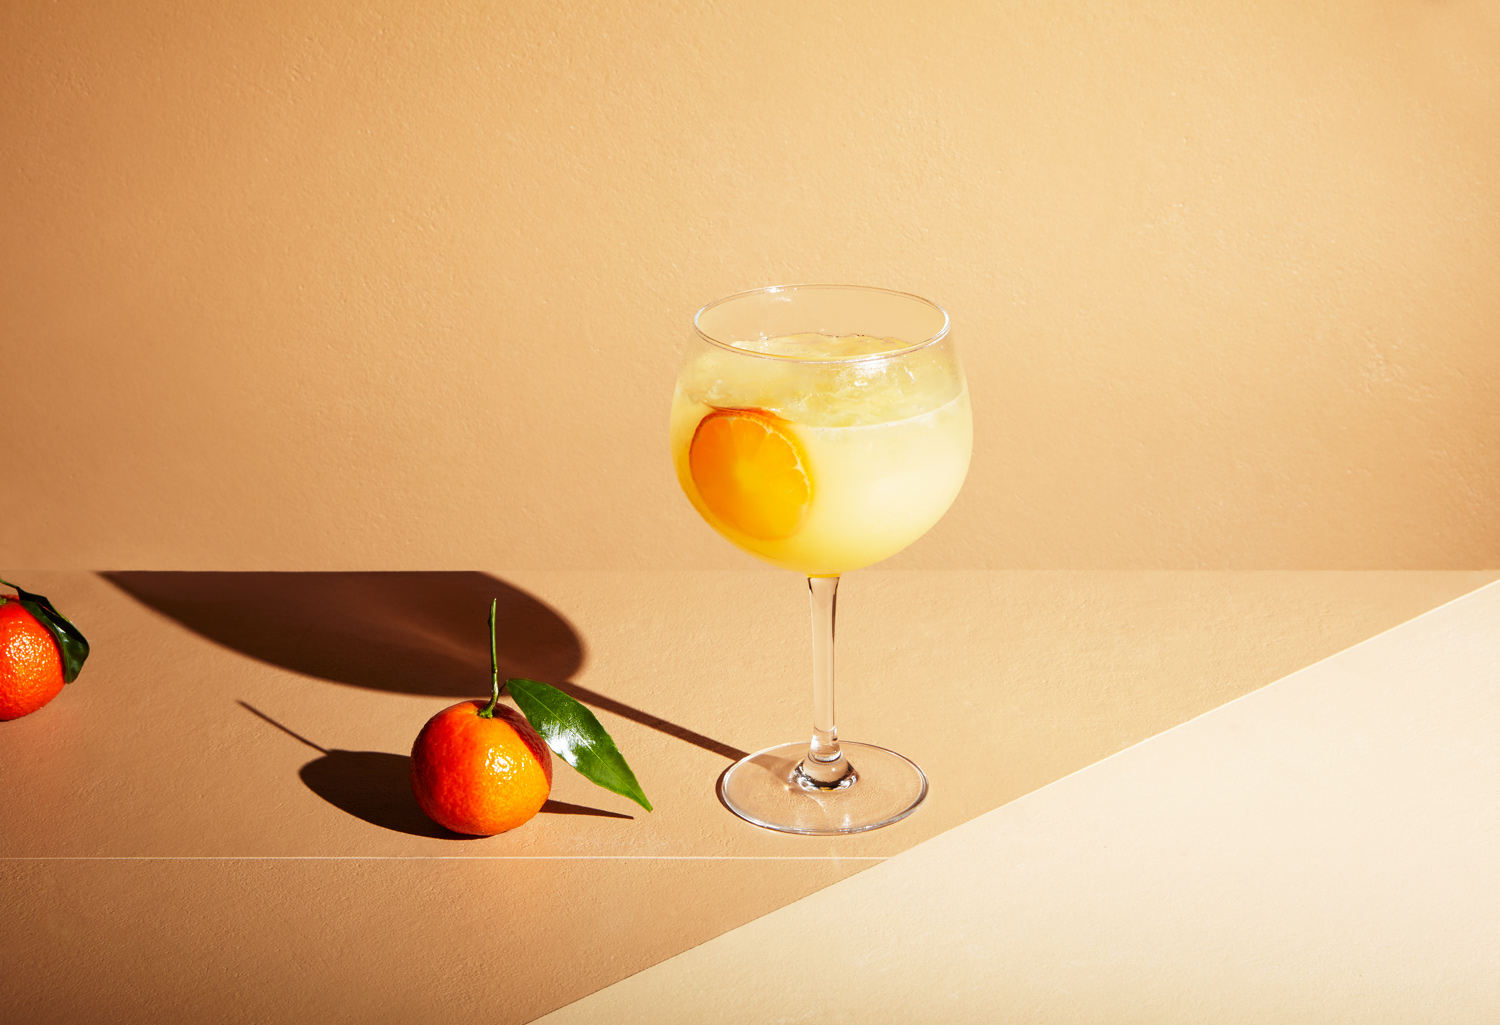 katie hammond photography buns and buns still life food mandarin spritz